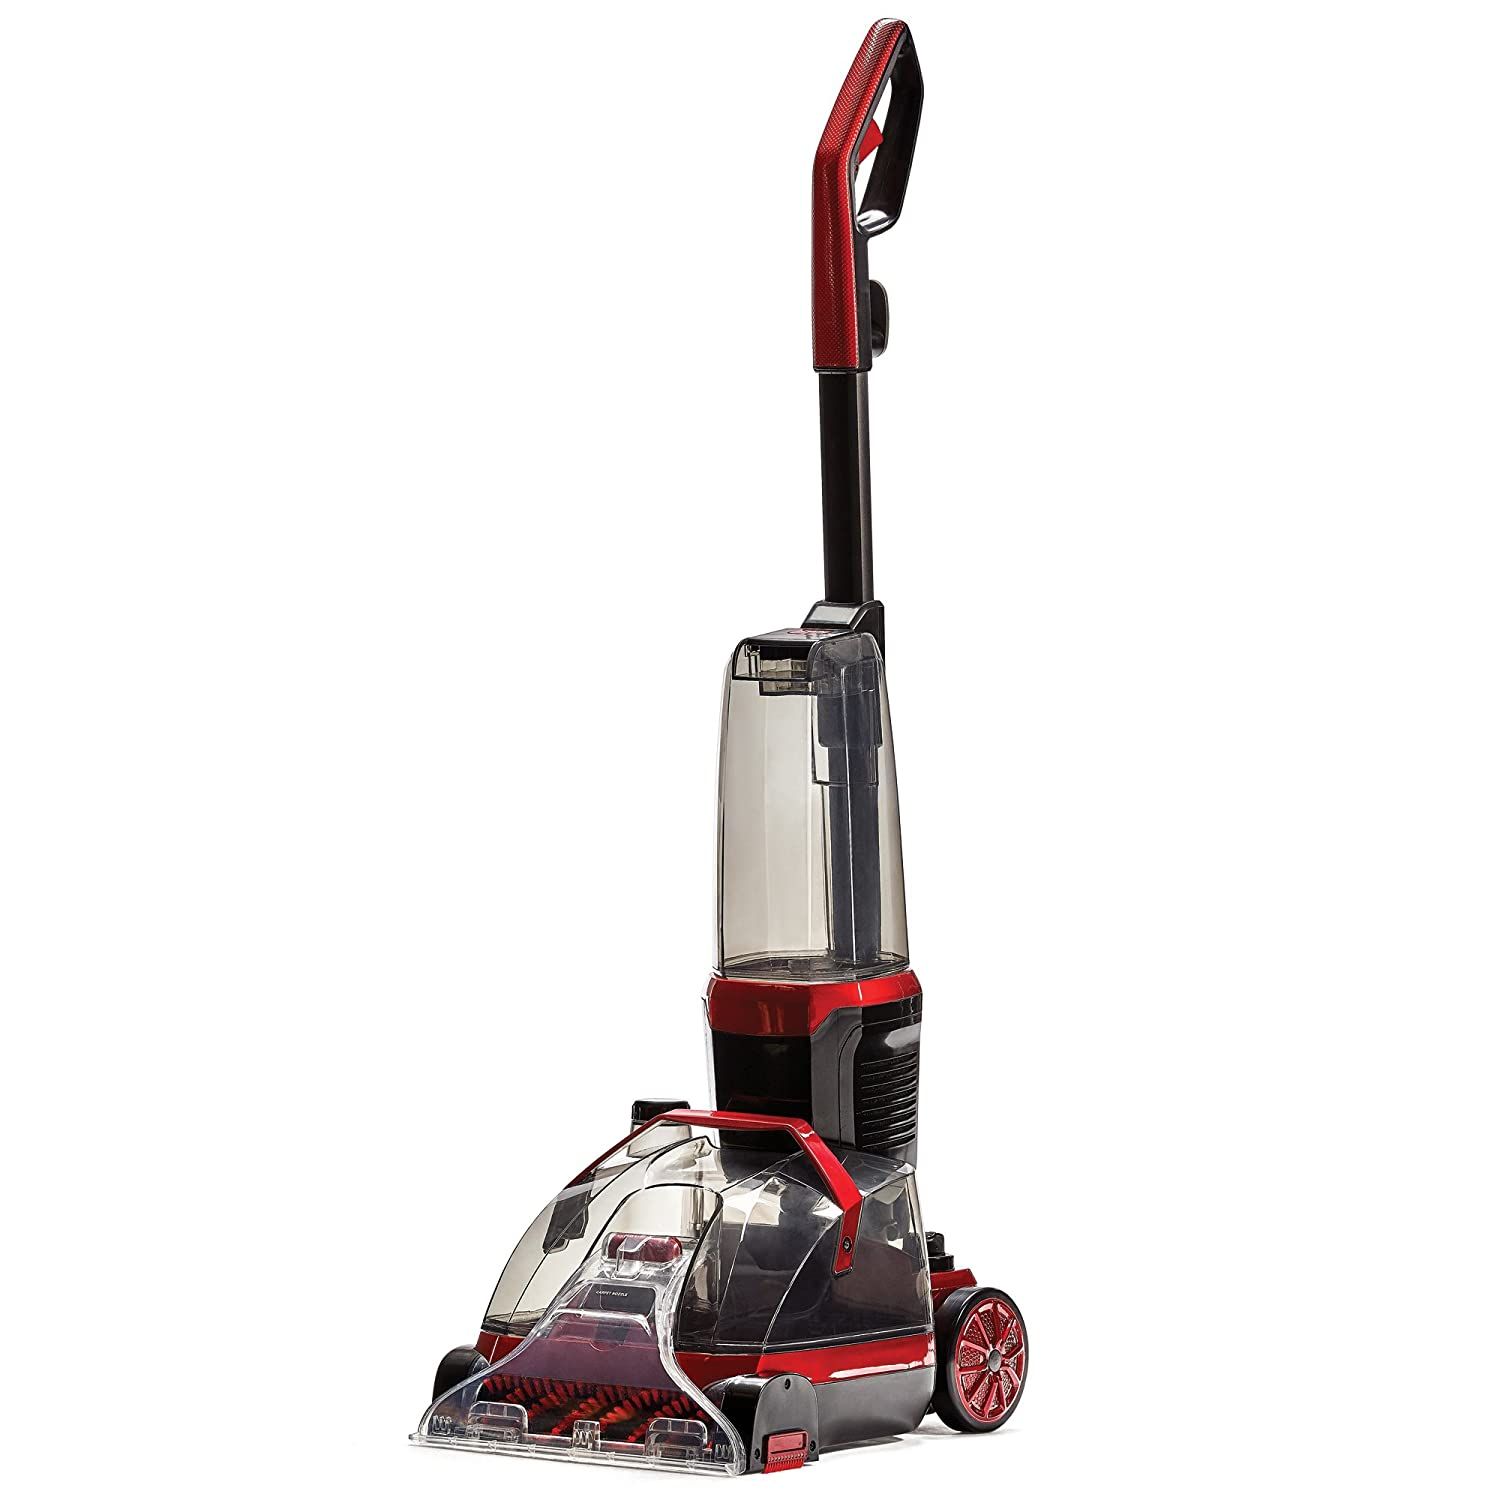 Rug Doctor Flexclean Machine Lightweight, Easy Maneuver Cleaner Uses One Solution For Both Carpet And Sealed Hard Floors Powerful Suction For Deep Clean, Routine Quick Dry by Rug Doctor